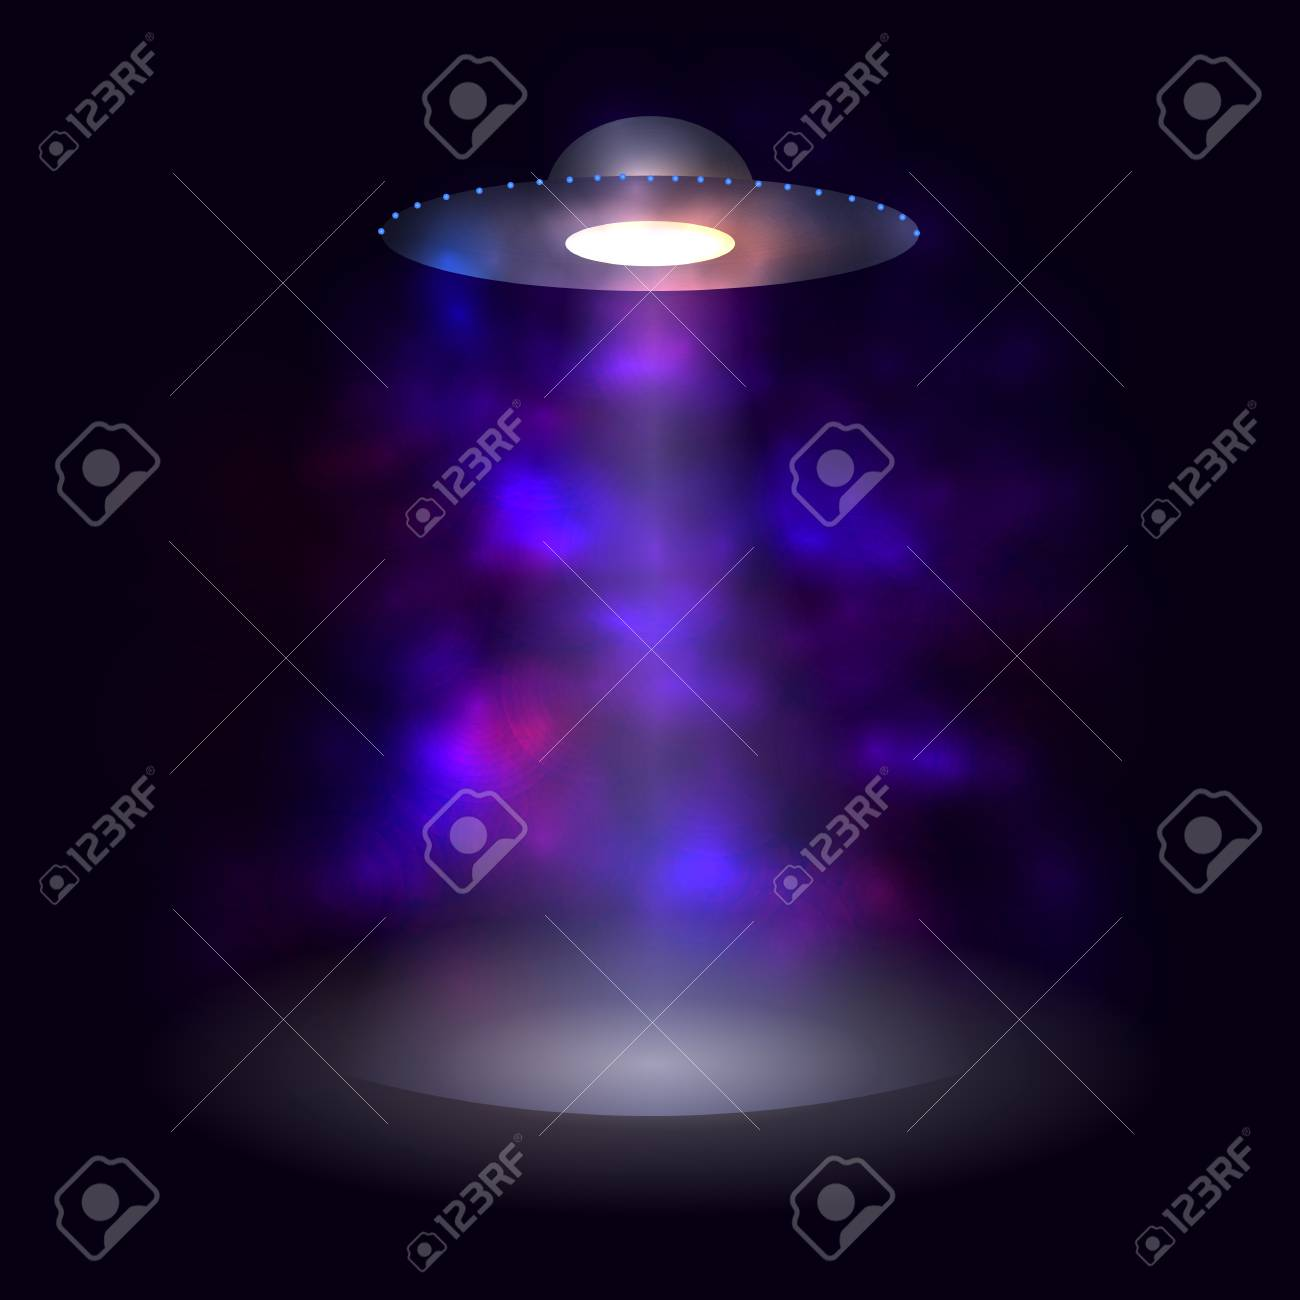 Vector Spaceship, Abstract Glowing Fog, Aliens, Shining Background. - 108408254